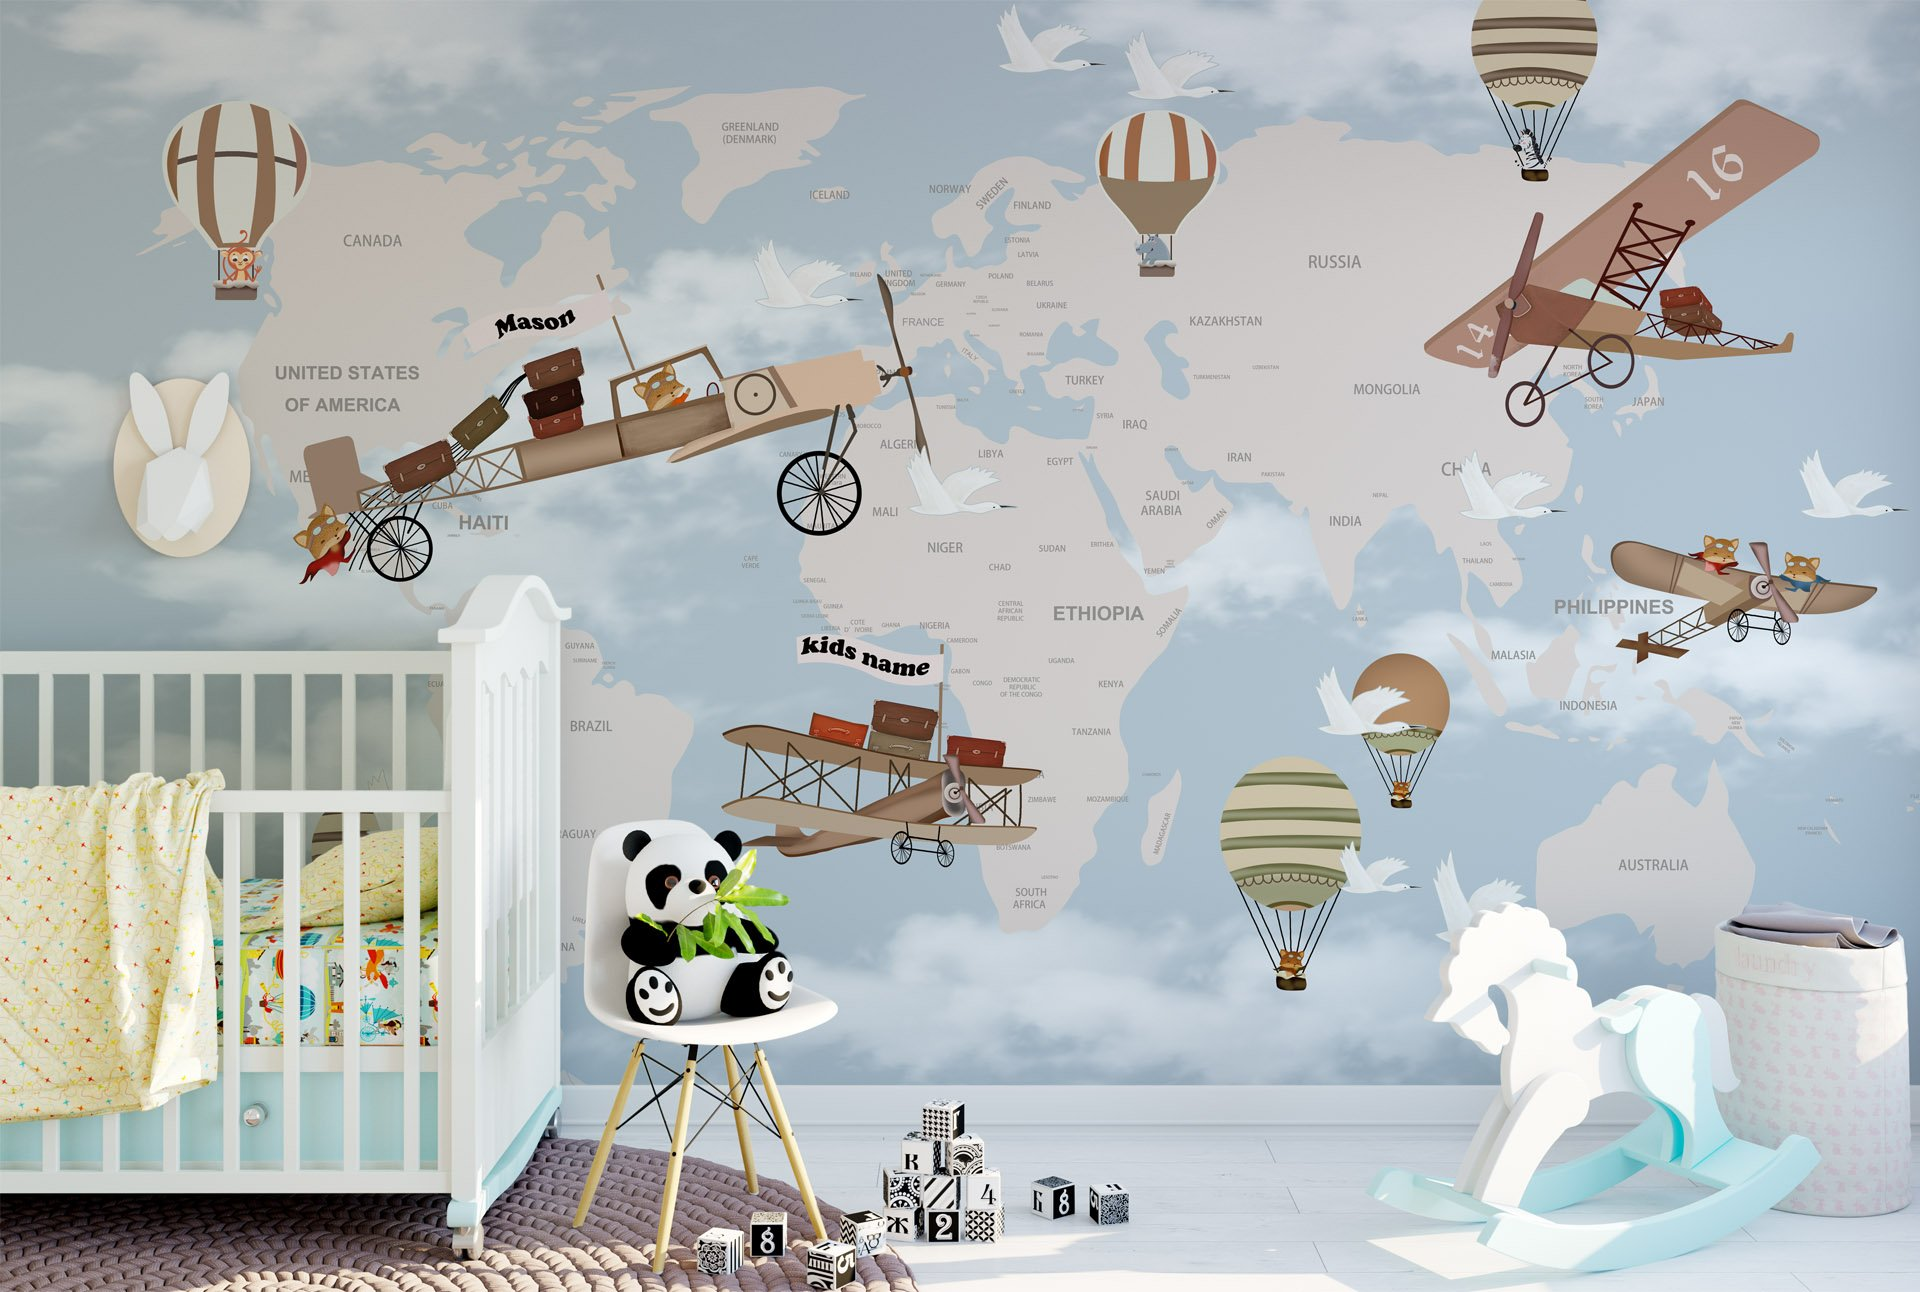 Map with Airplane Nursery Wallpaper Educational geography Wallpaper for Kids room Balloons Wall Mural for Baby Bedroom Slef-adhesive Fabric Wall Decal Removable